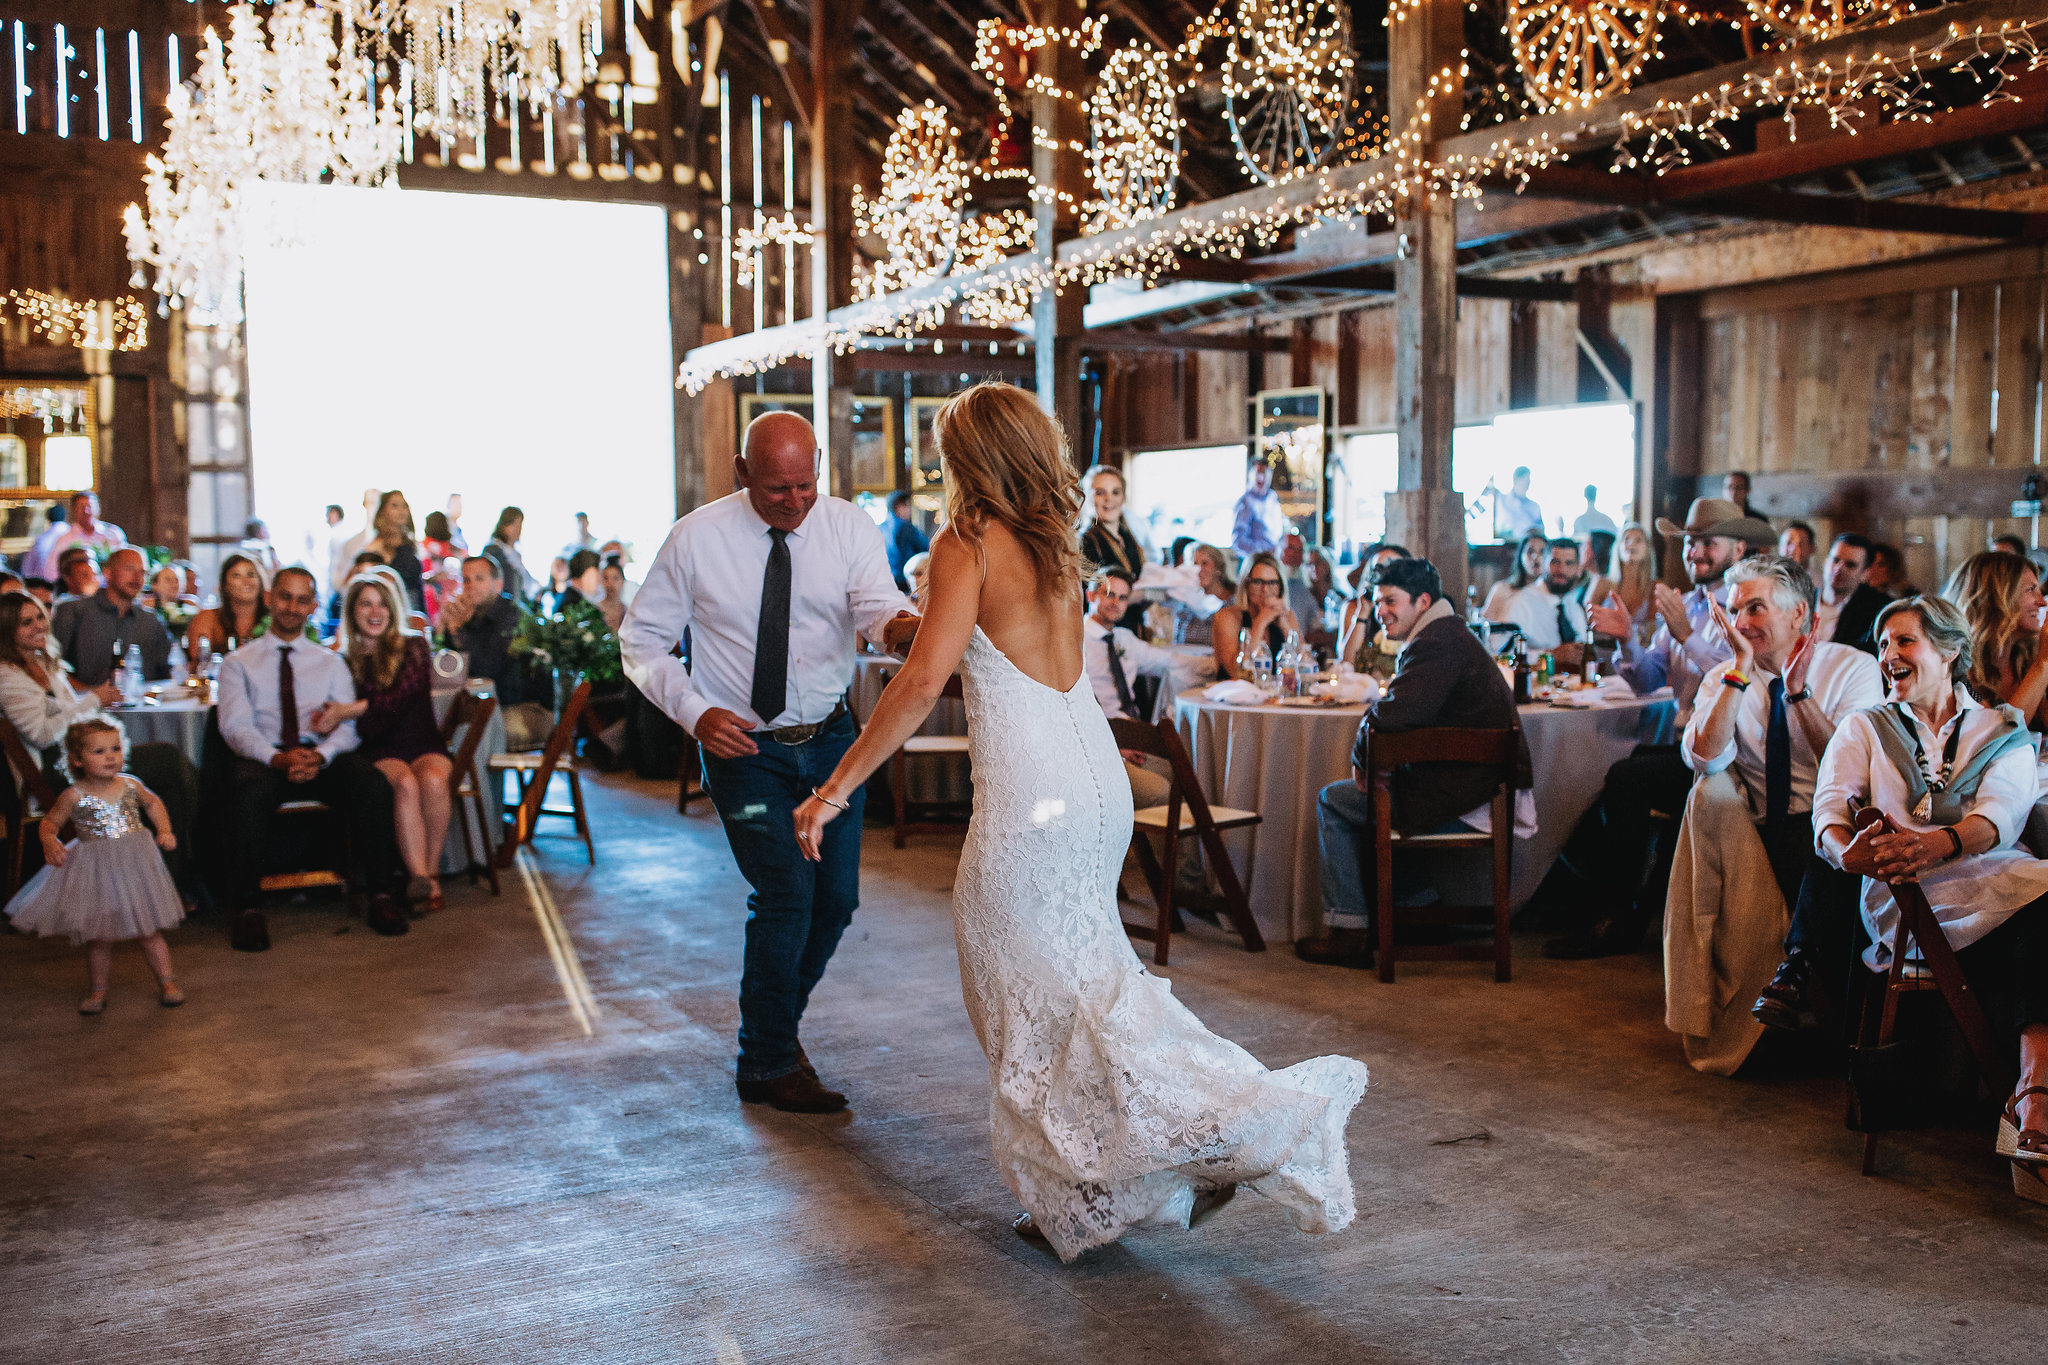 Napa_valley_win_country_Dillion_beach_wedding_san_fran_Best_Property_Venue_for_rent_Barn_BarnYard_country.jpg